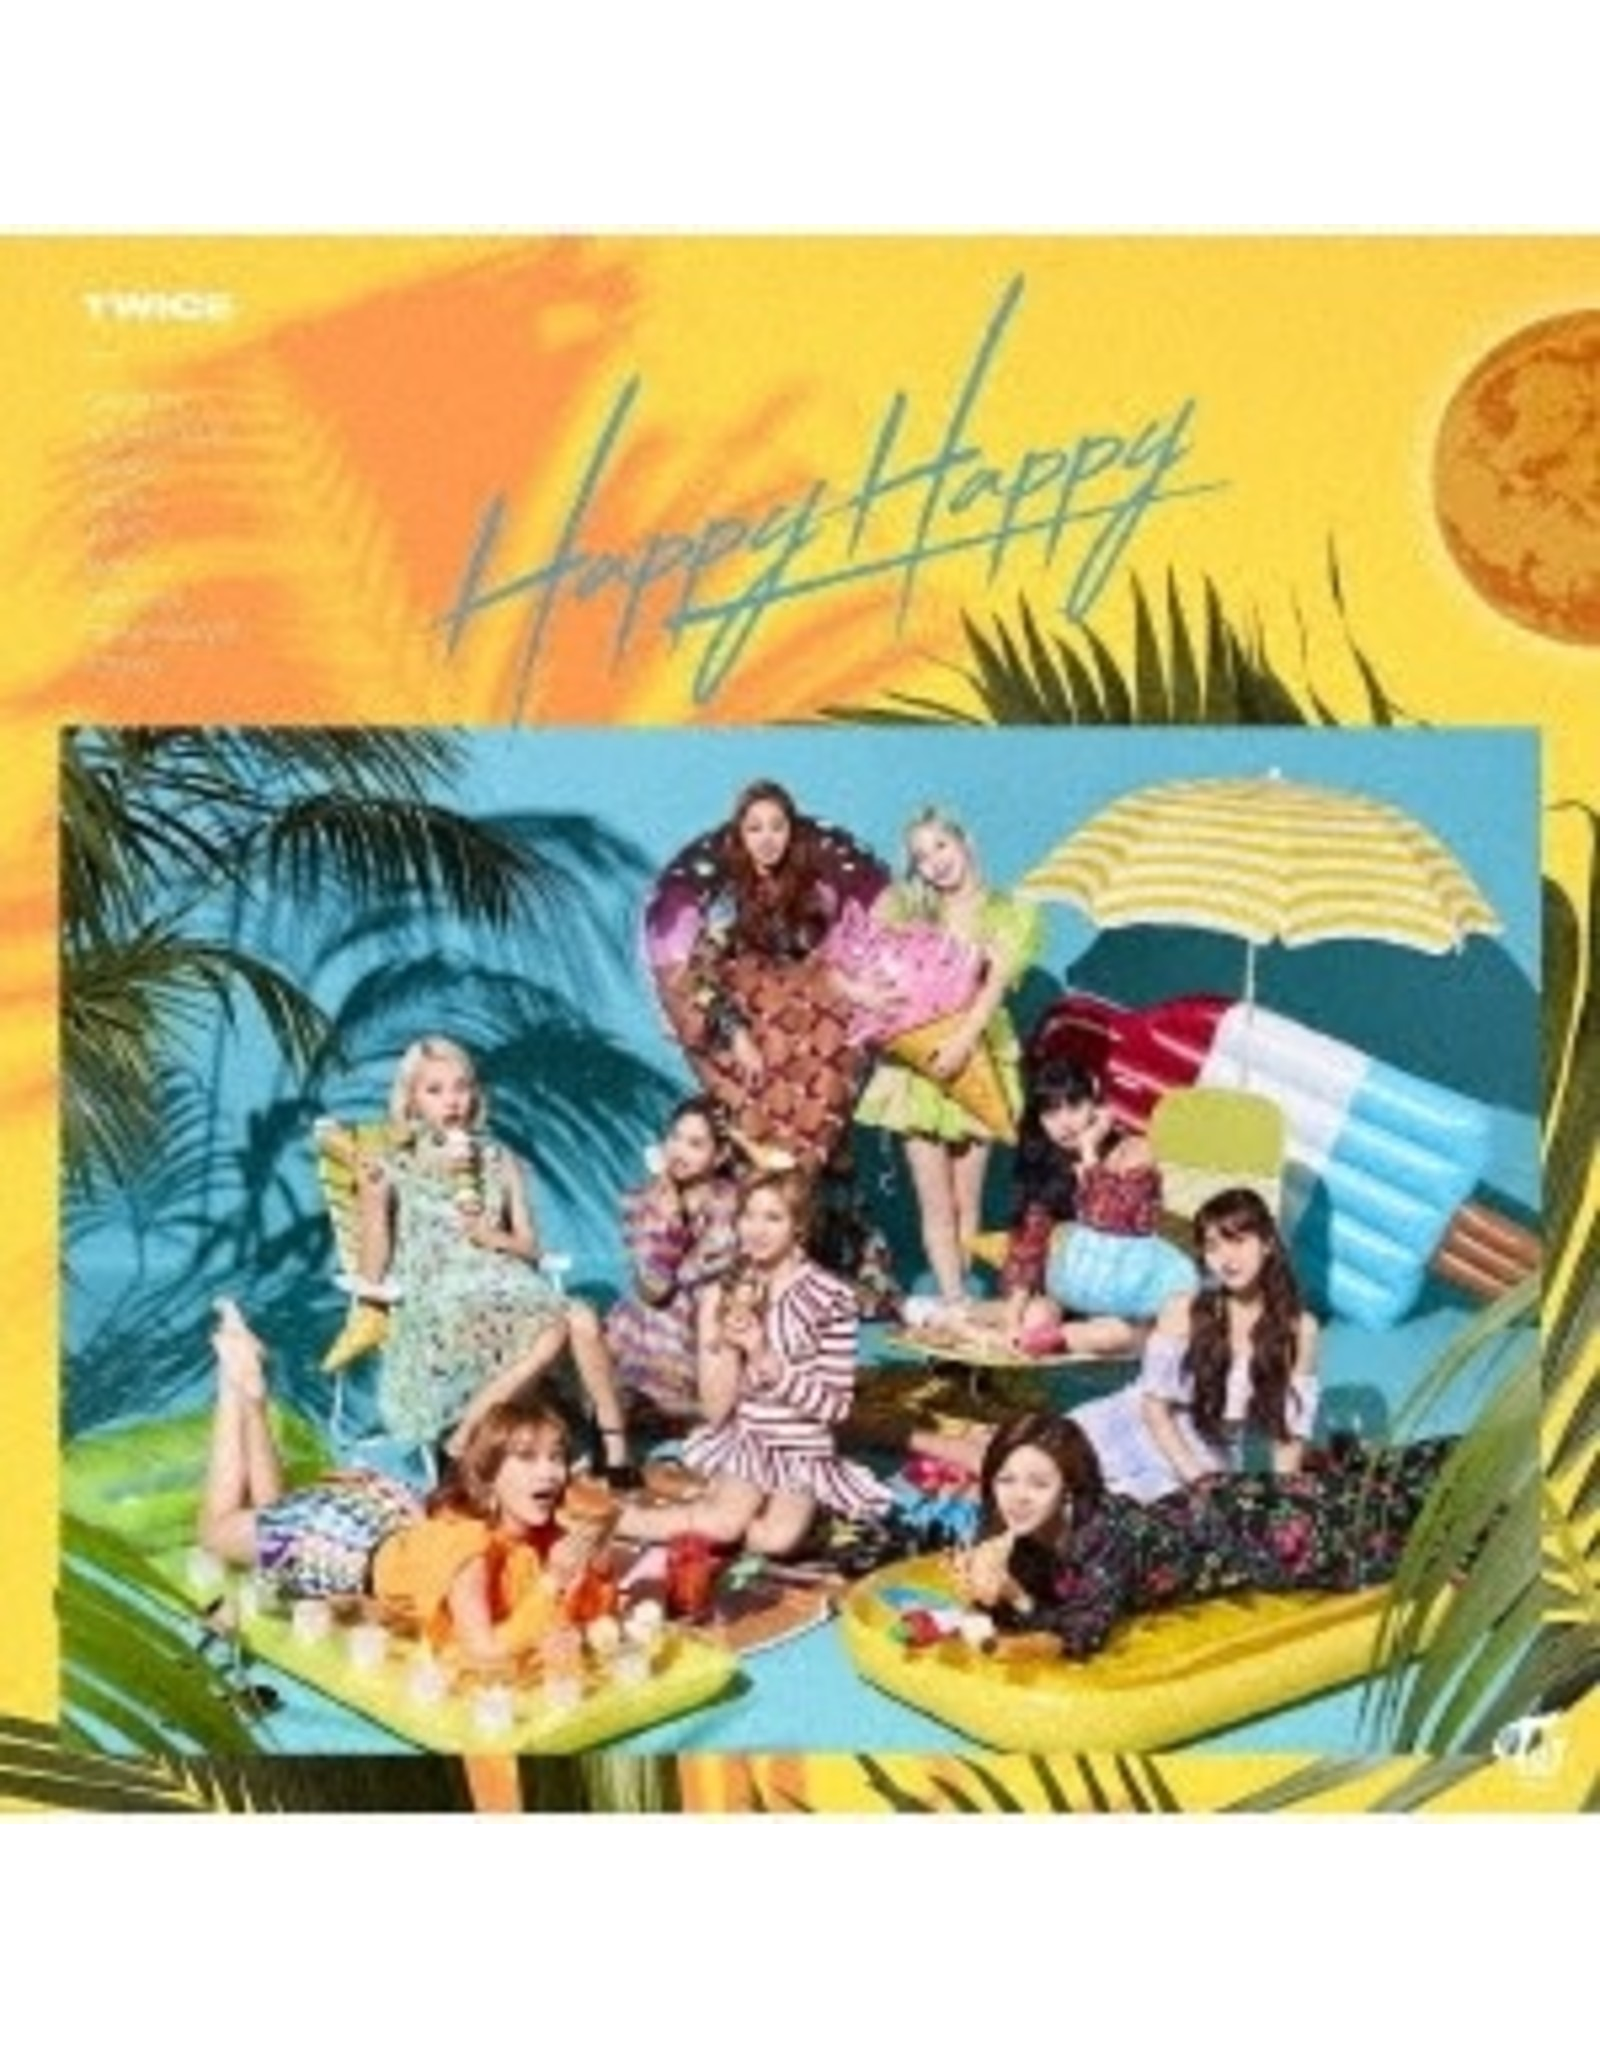 WP [CD]HAPPY HAPPY  [TRADING CARD FOR 1ST PRESSING ]